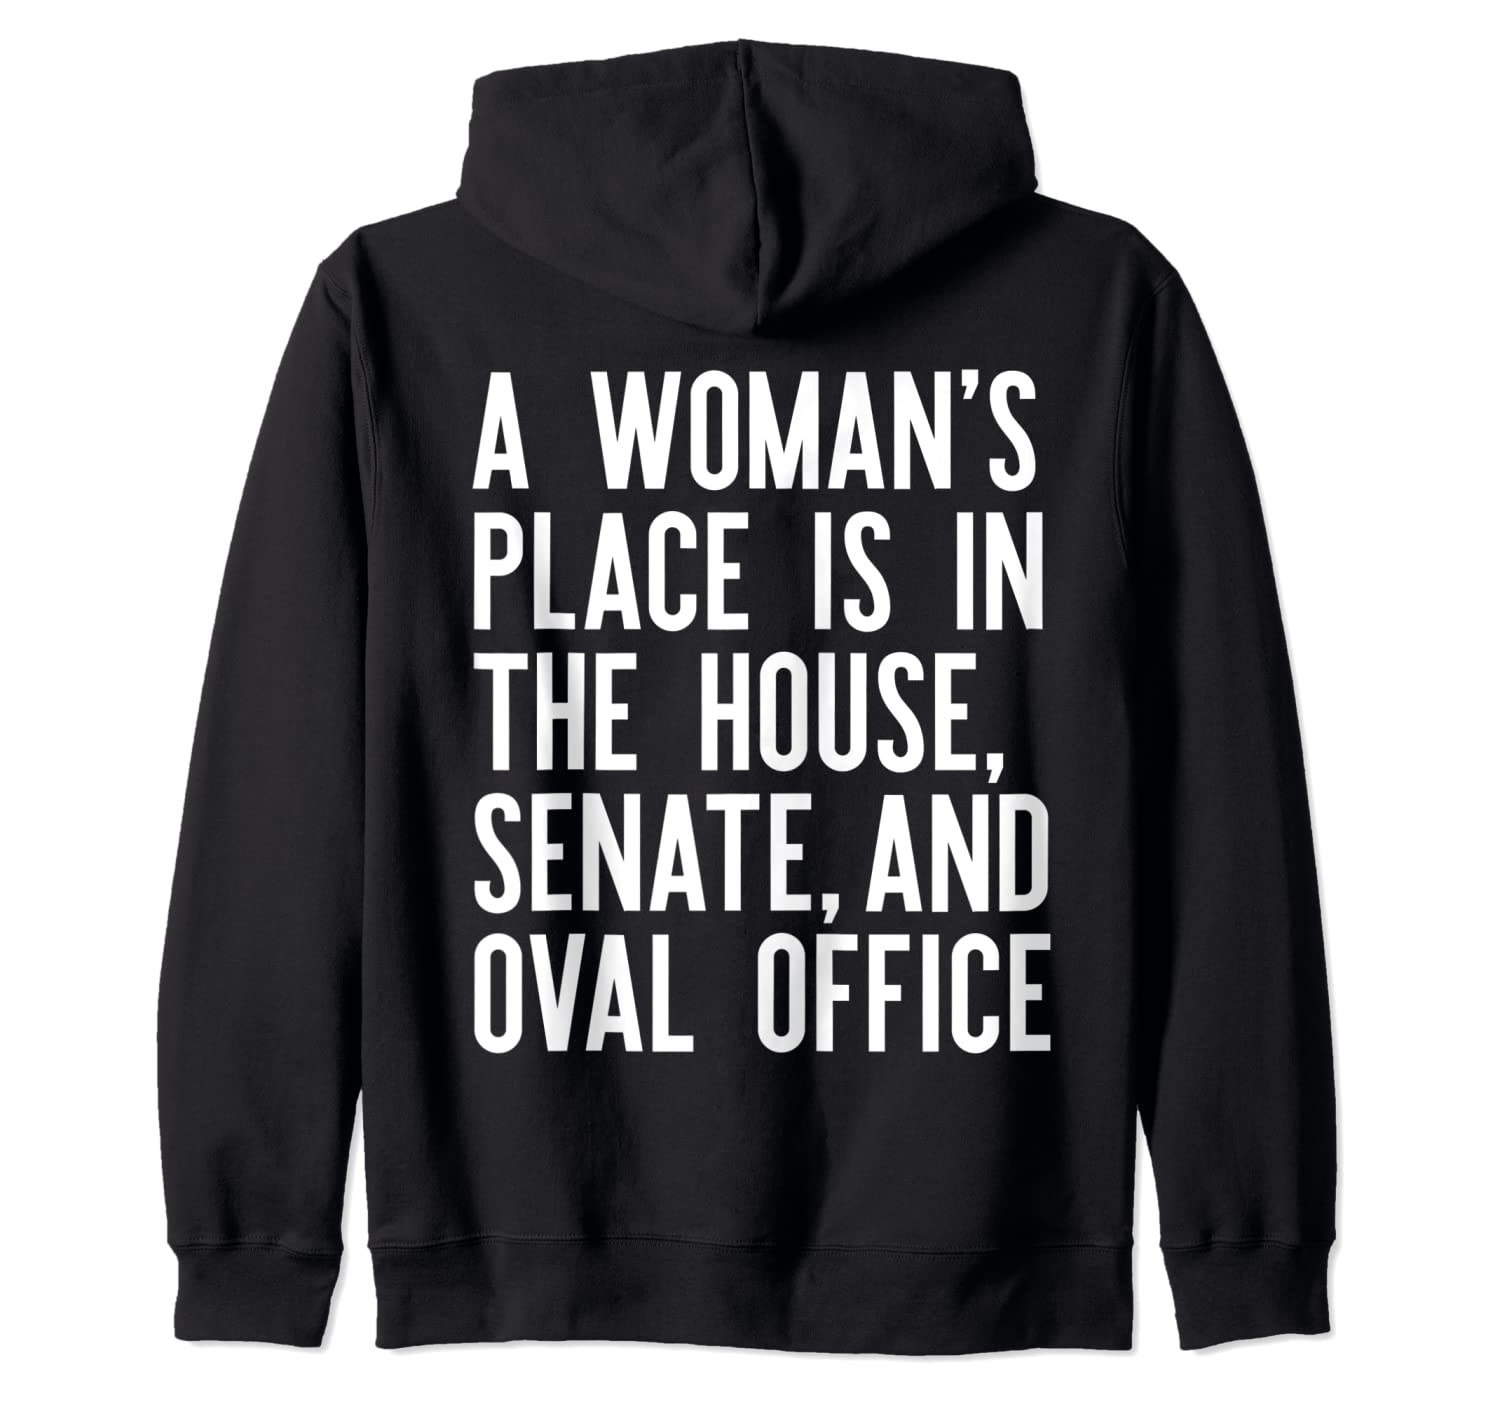 A WOMAN'S PLACE IS IN THE HOUSE SENATE & OVAL OFFICE Meme Zip Hoodie